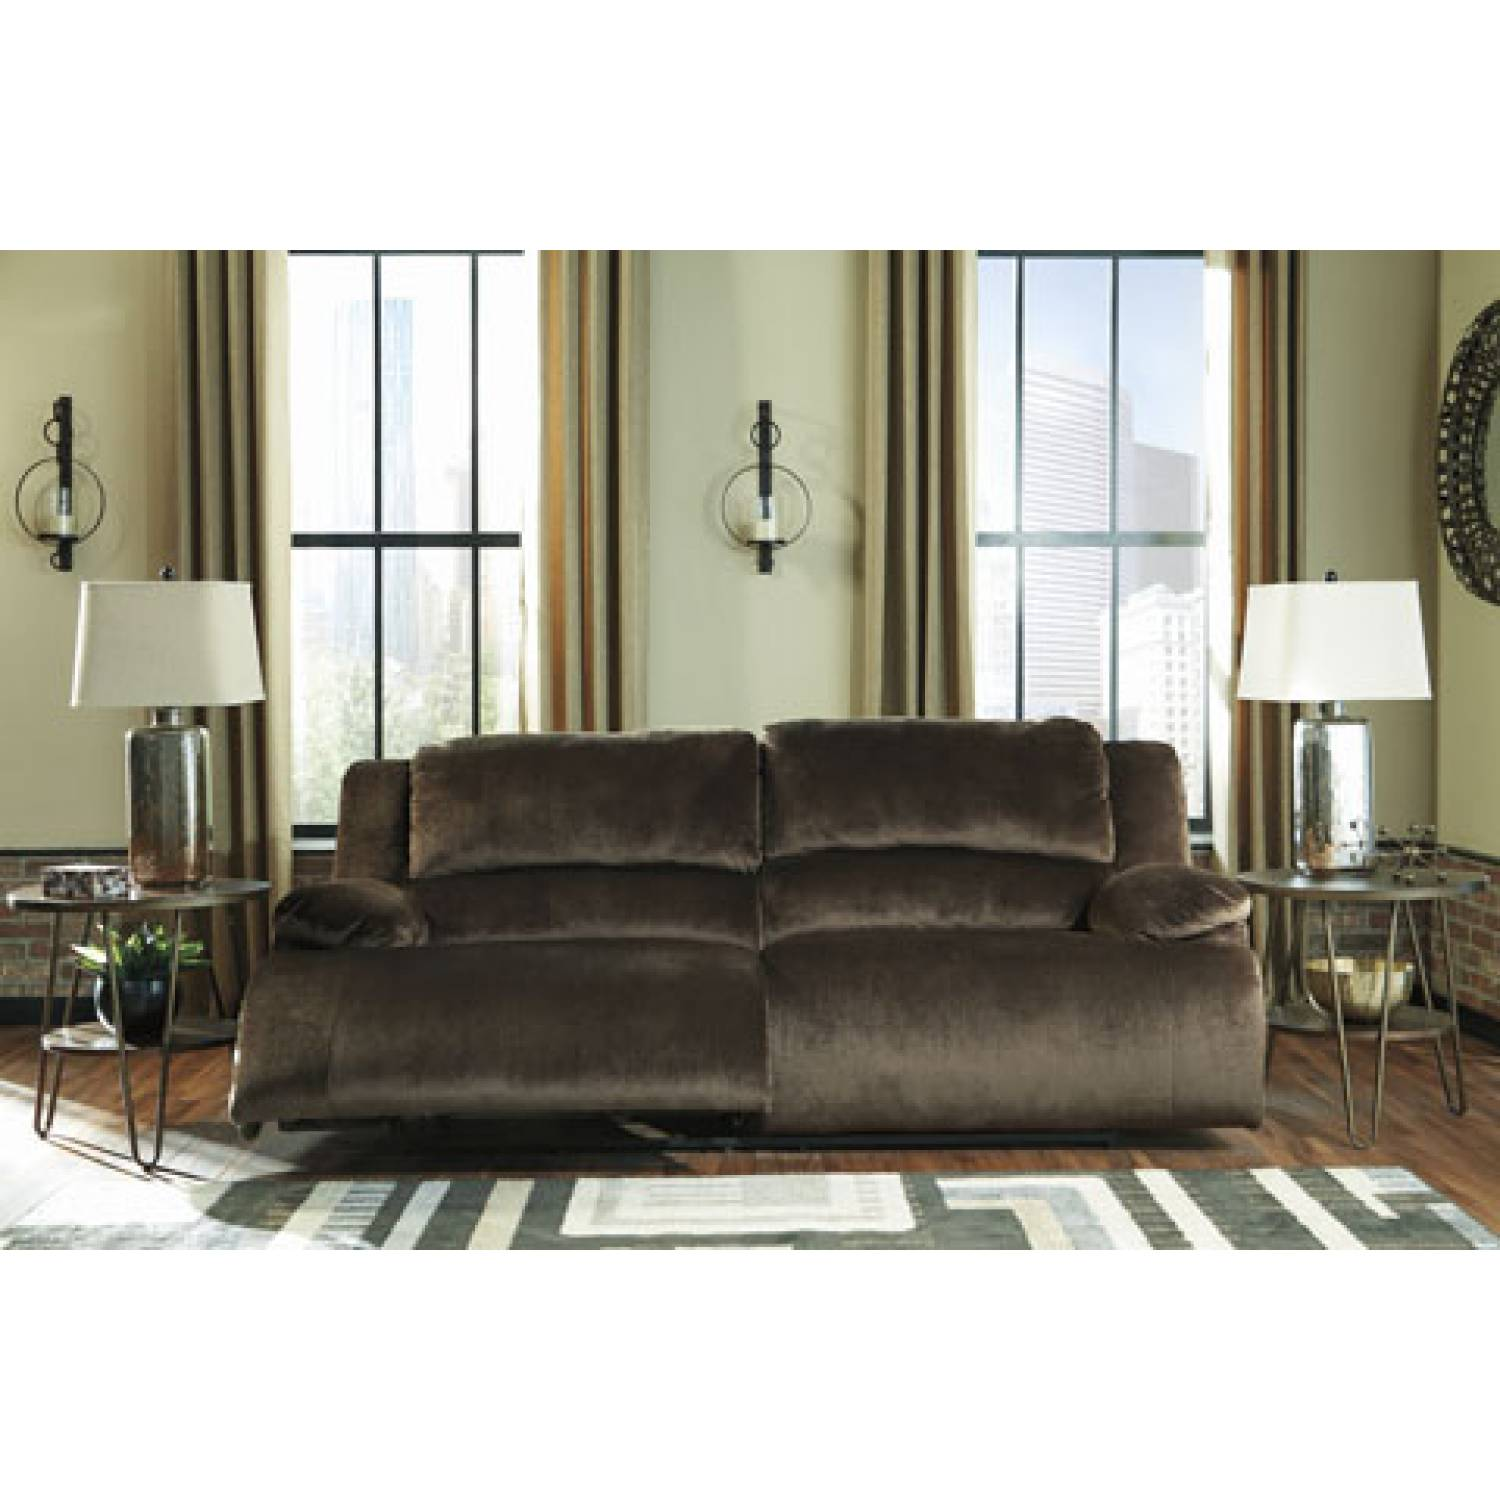 36504 Clonmel Reclining Loveseat